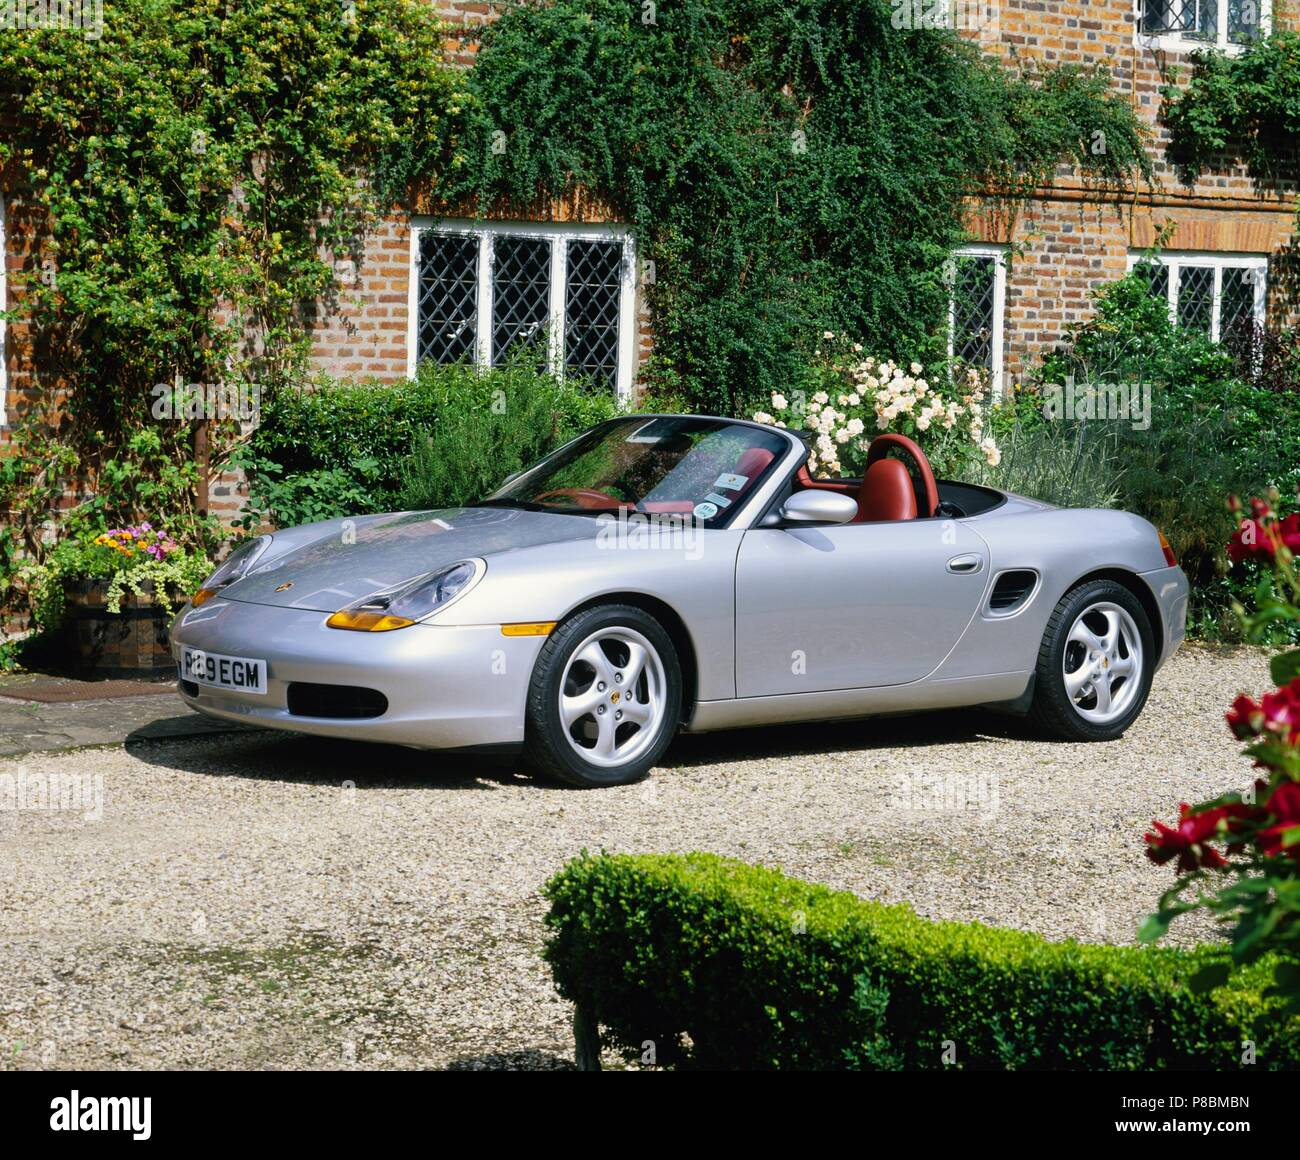 Porsche Boxster 2.5L engine - 1997 model year in silver metallic and in countryside setting showing front and side view with roof down - Stock Image